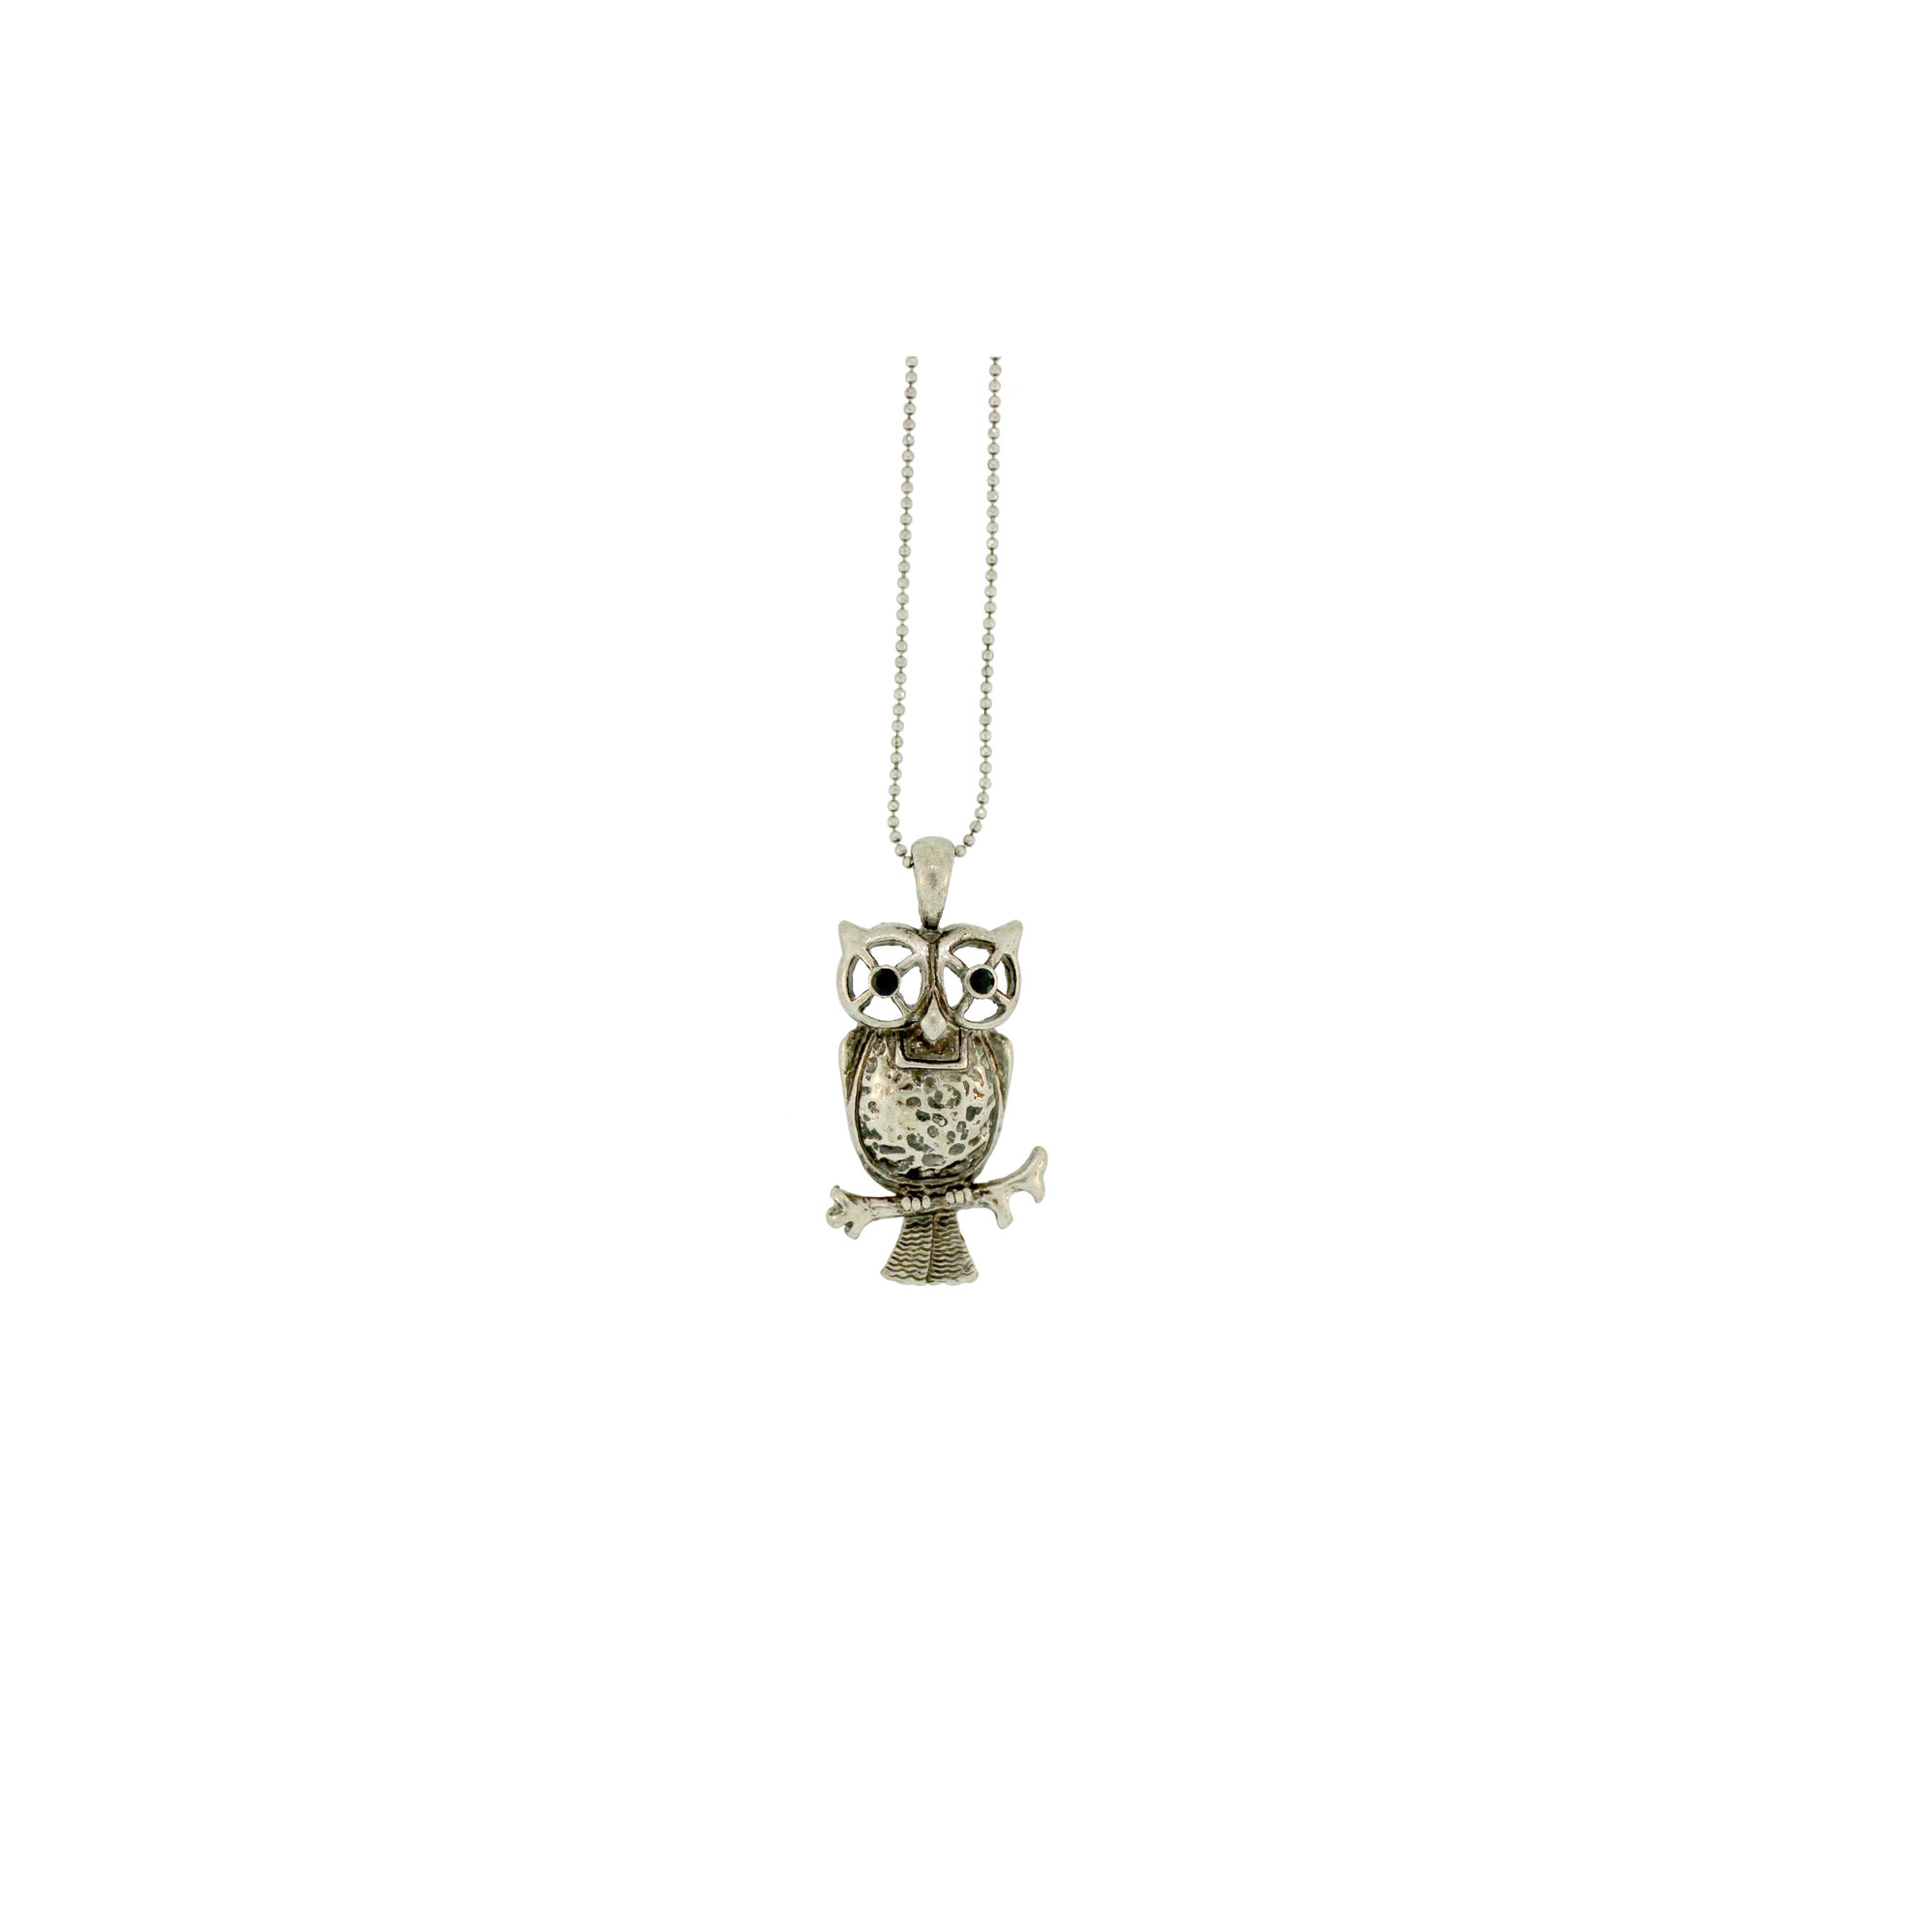 Antique Silver Finish Owl Necklace